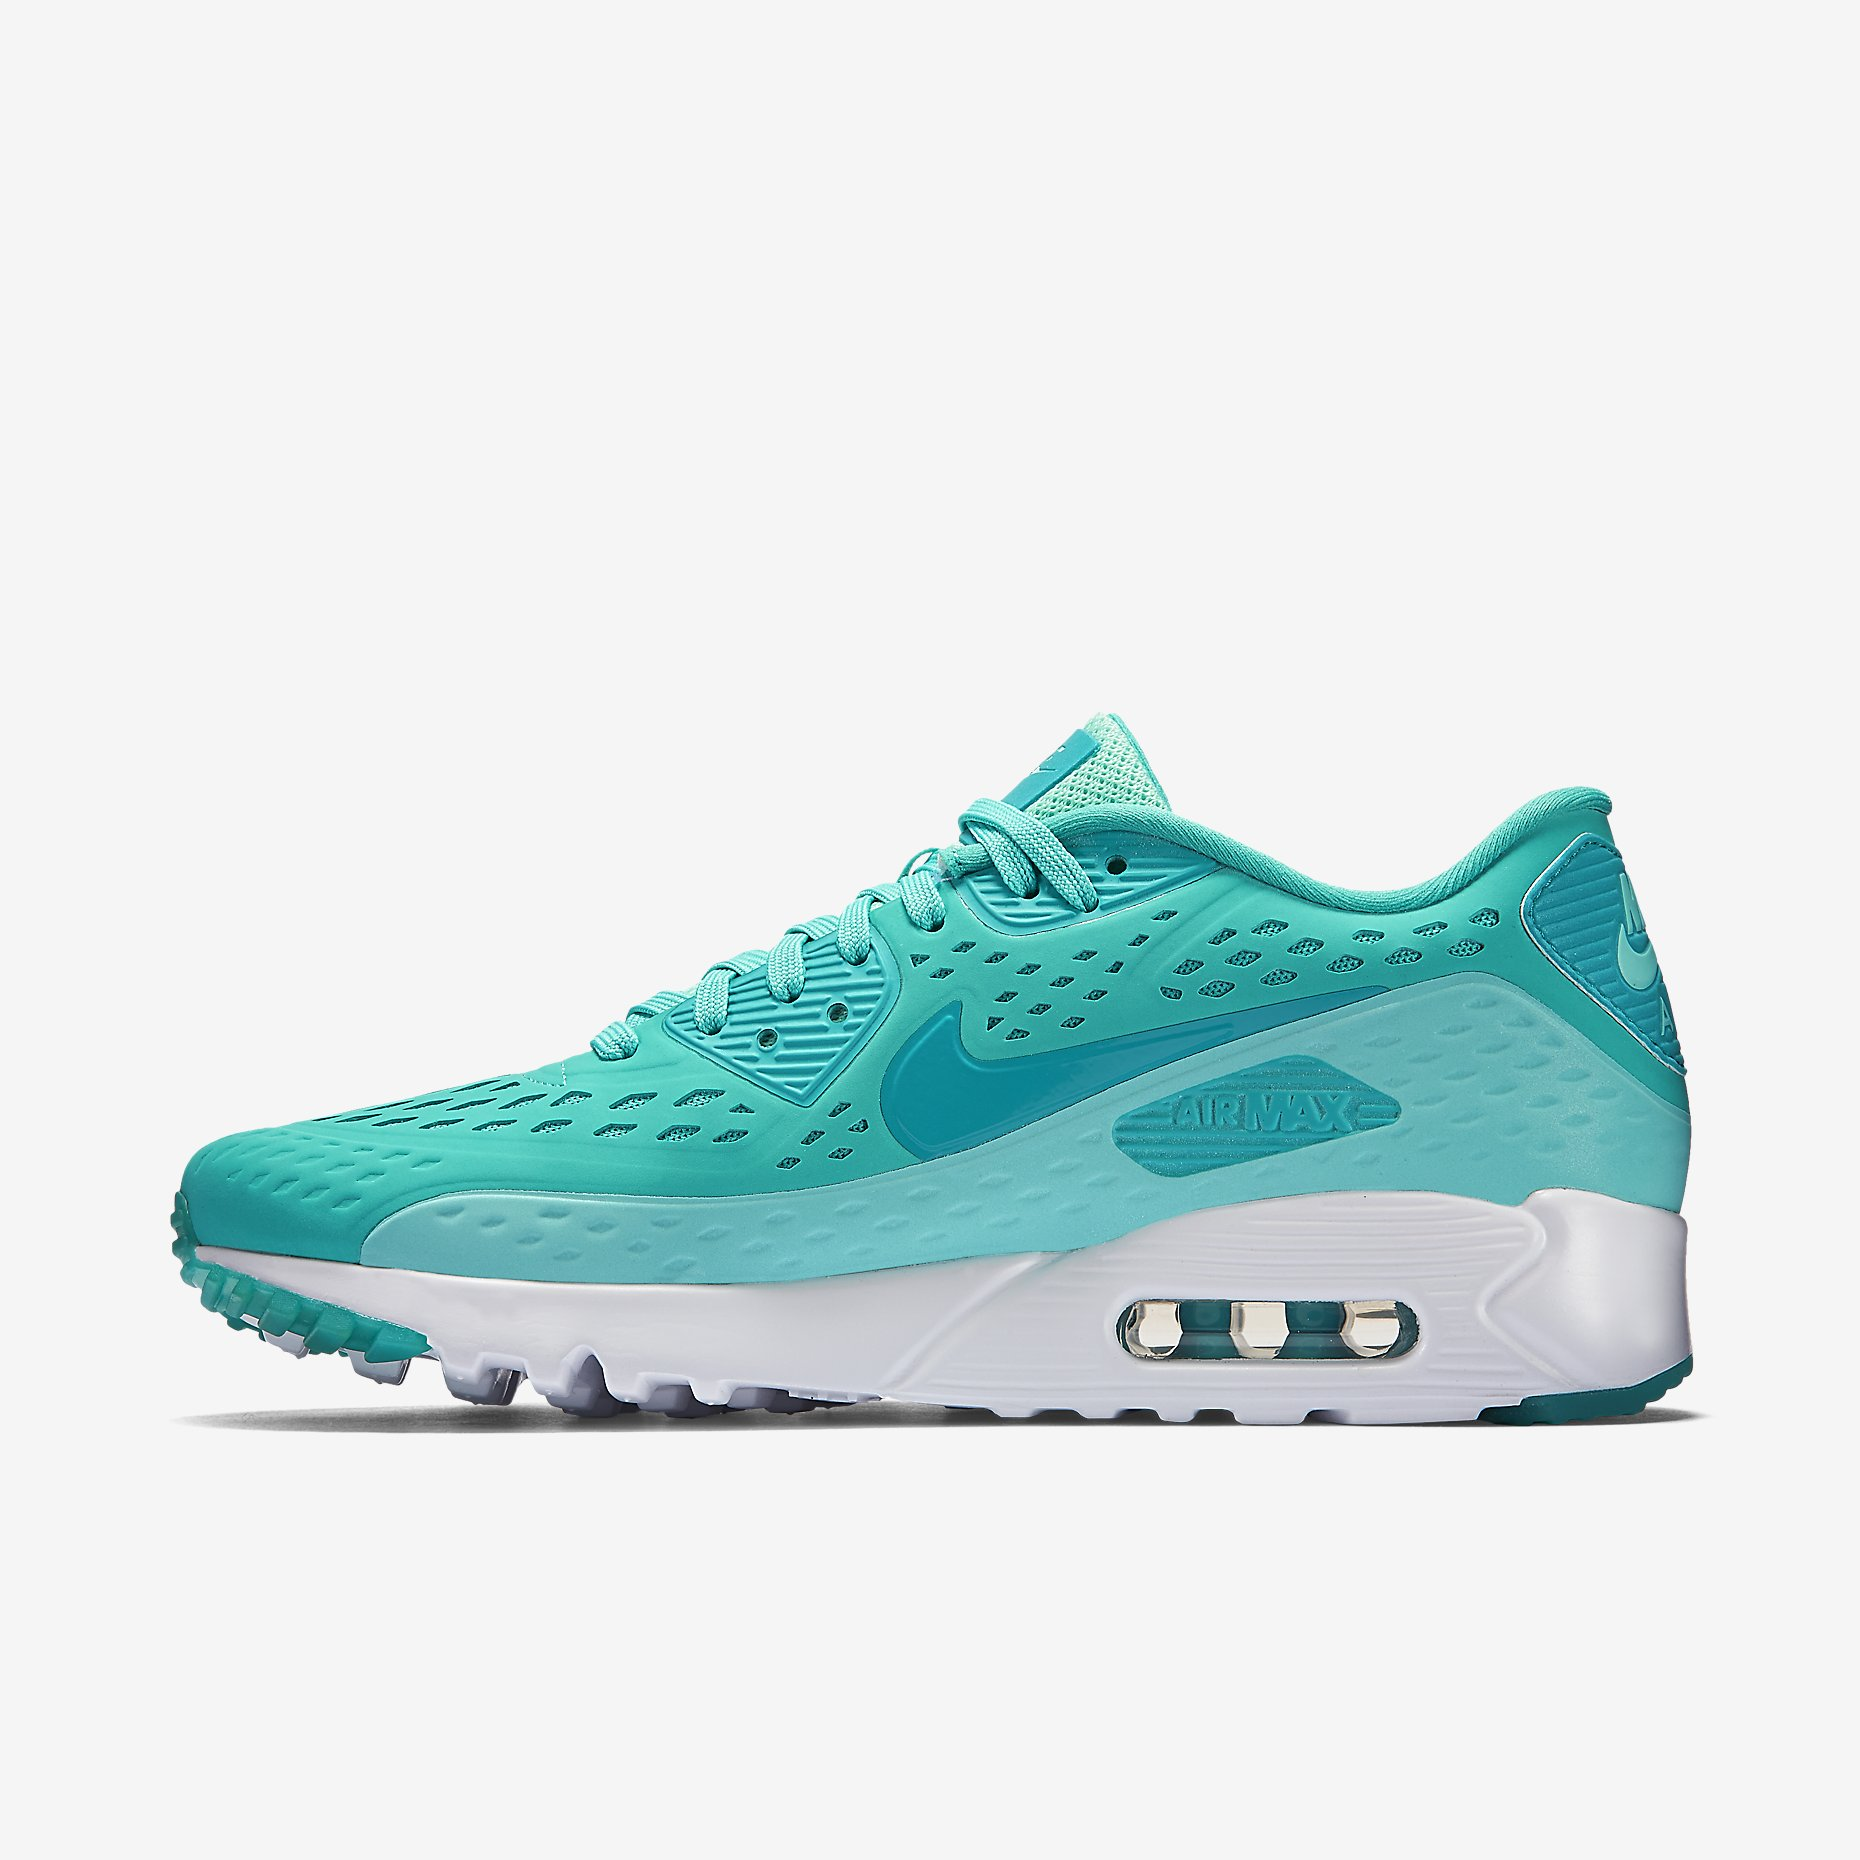 save off abbf2 3efd3 Womens Nike Air Max 90 Ultra Breathe Sneakers New, Black Grey 725061-002